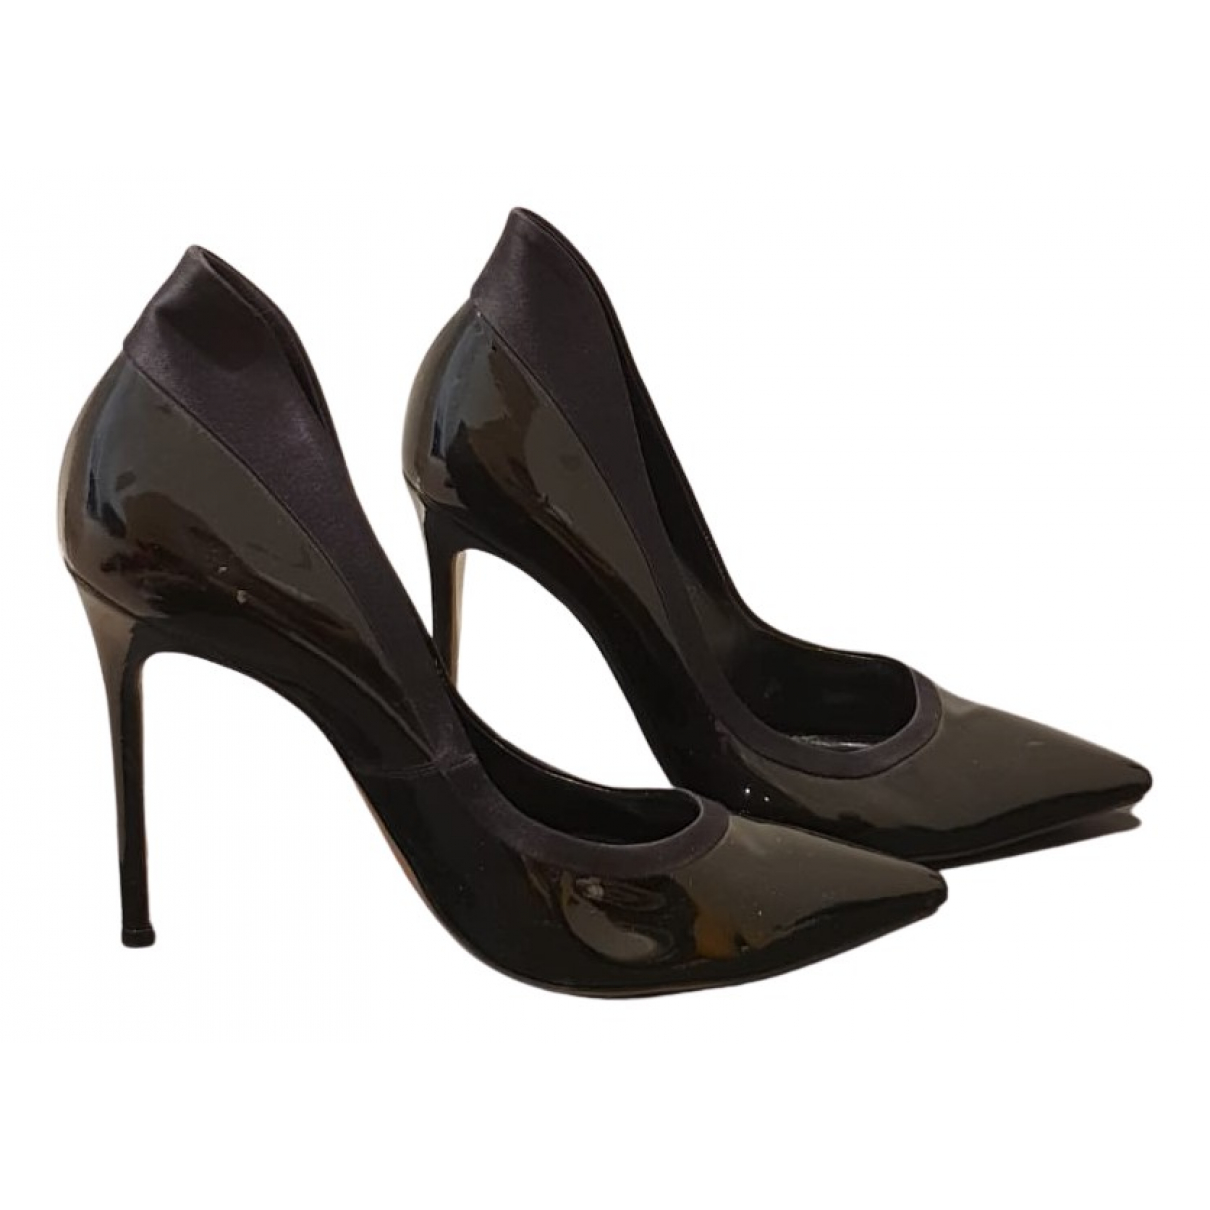 Gianvito Rossi N Black Patent leather Heels for Women 40 EU